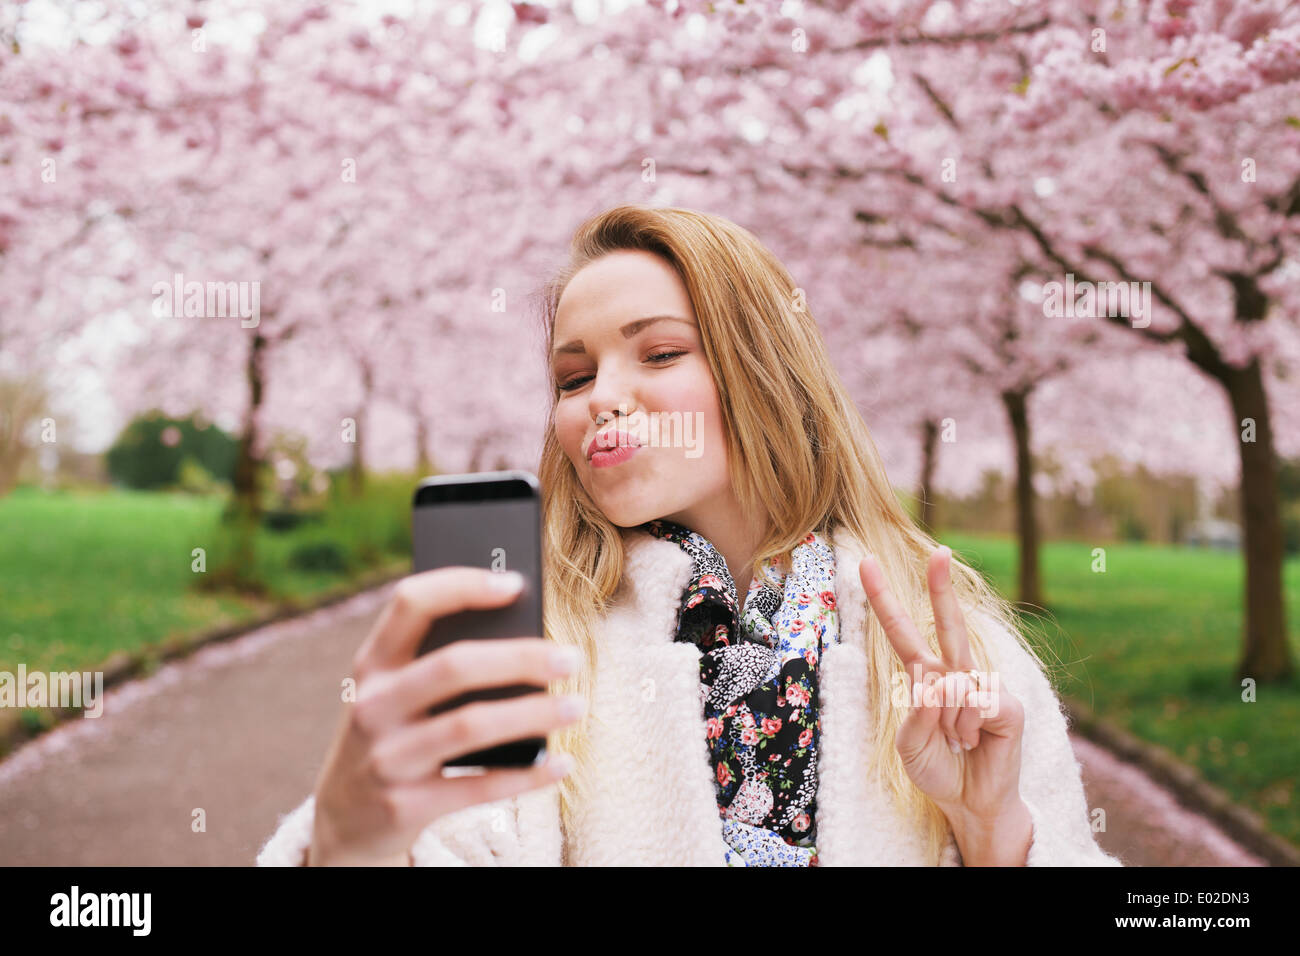 Attractive young woman posing for selfie. Beautiful female at spring blossom park taking self portrait with mobile phone. - Stock Image